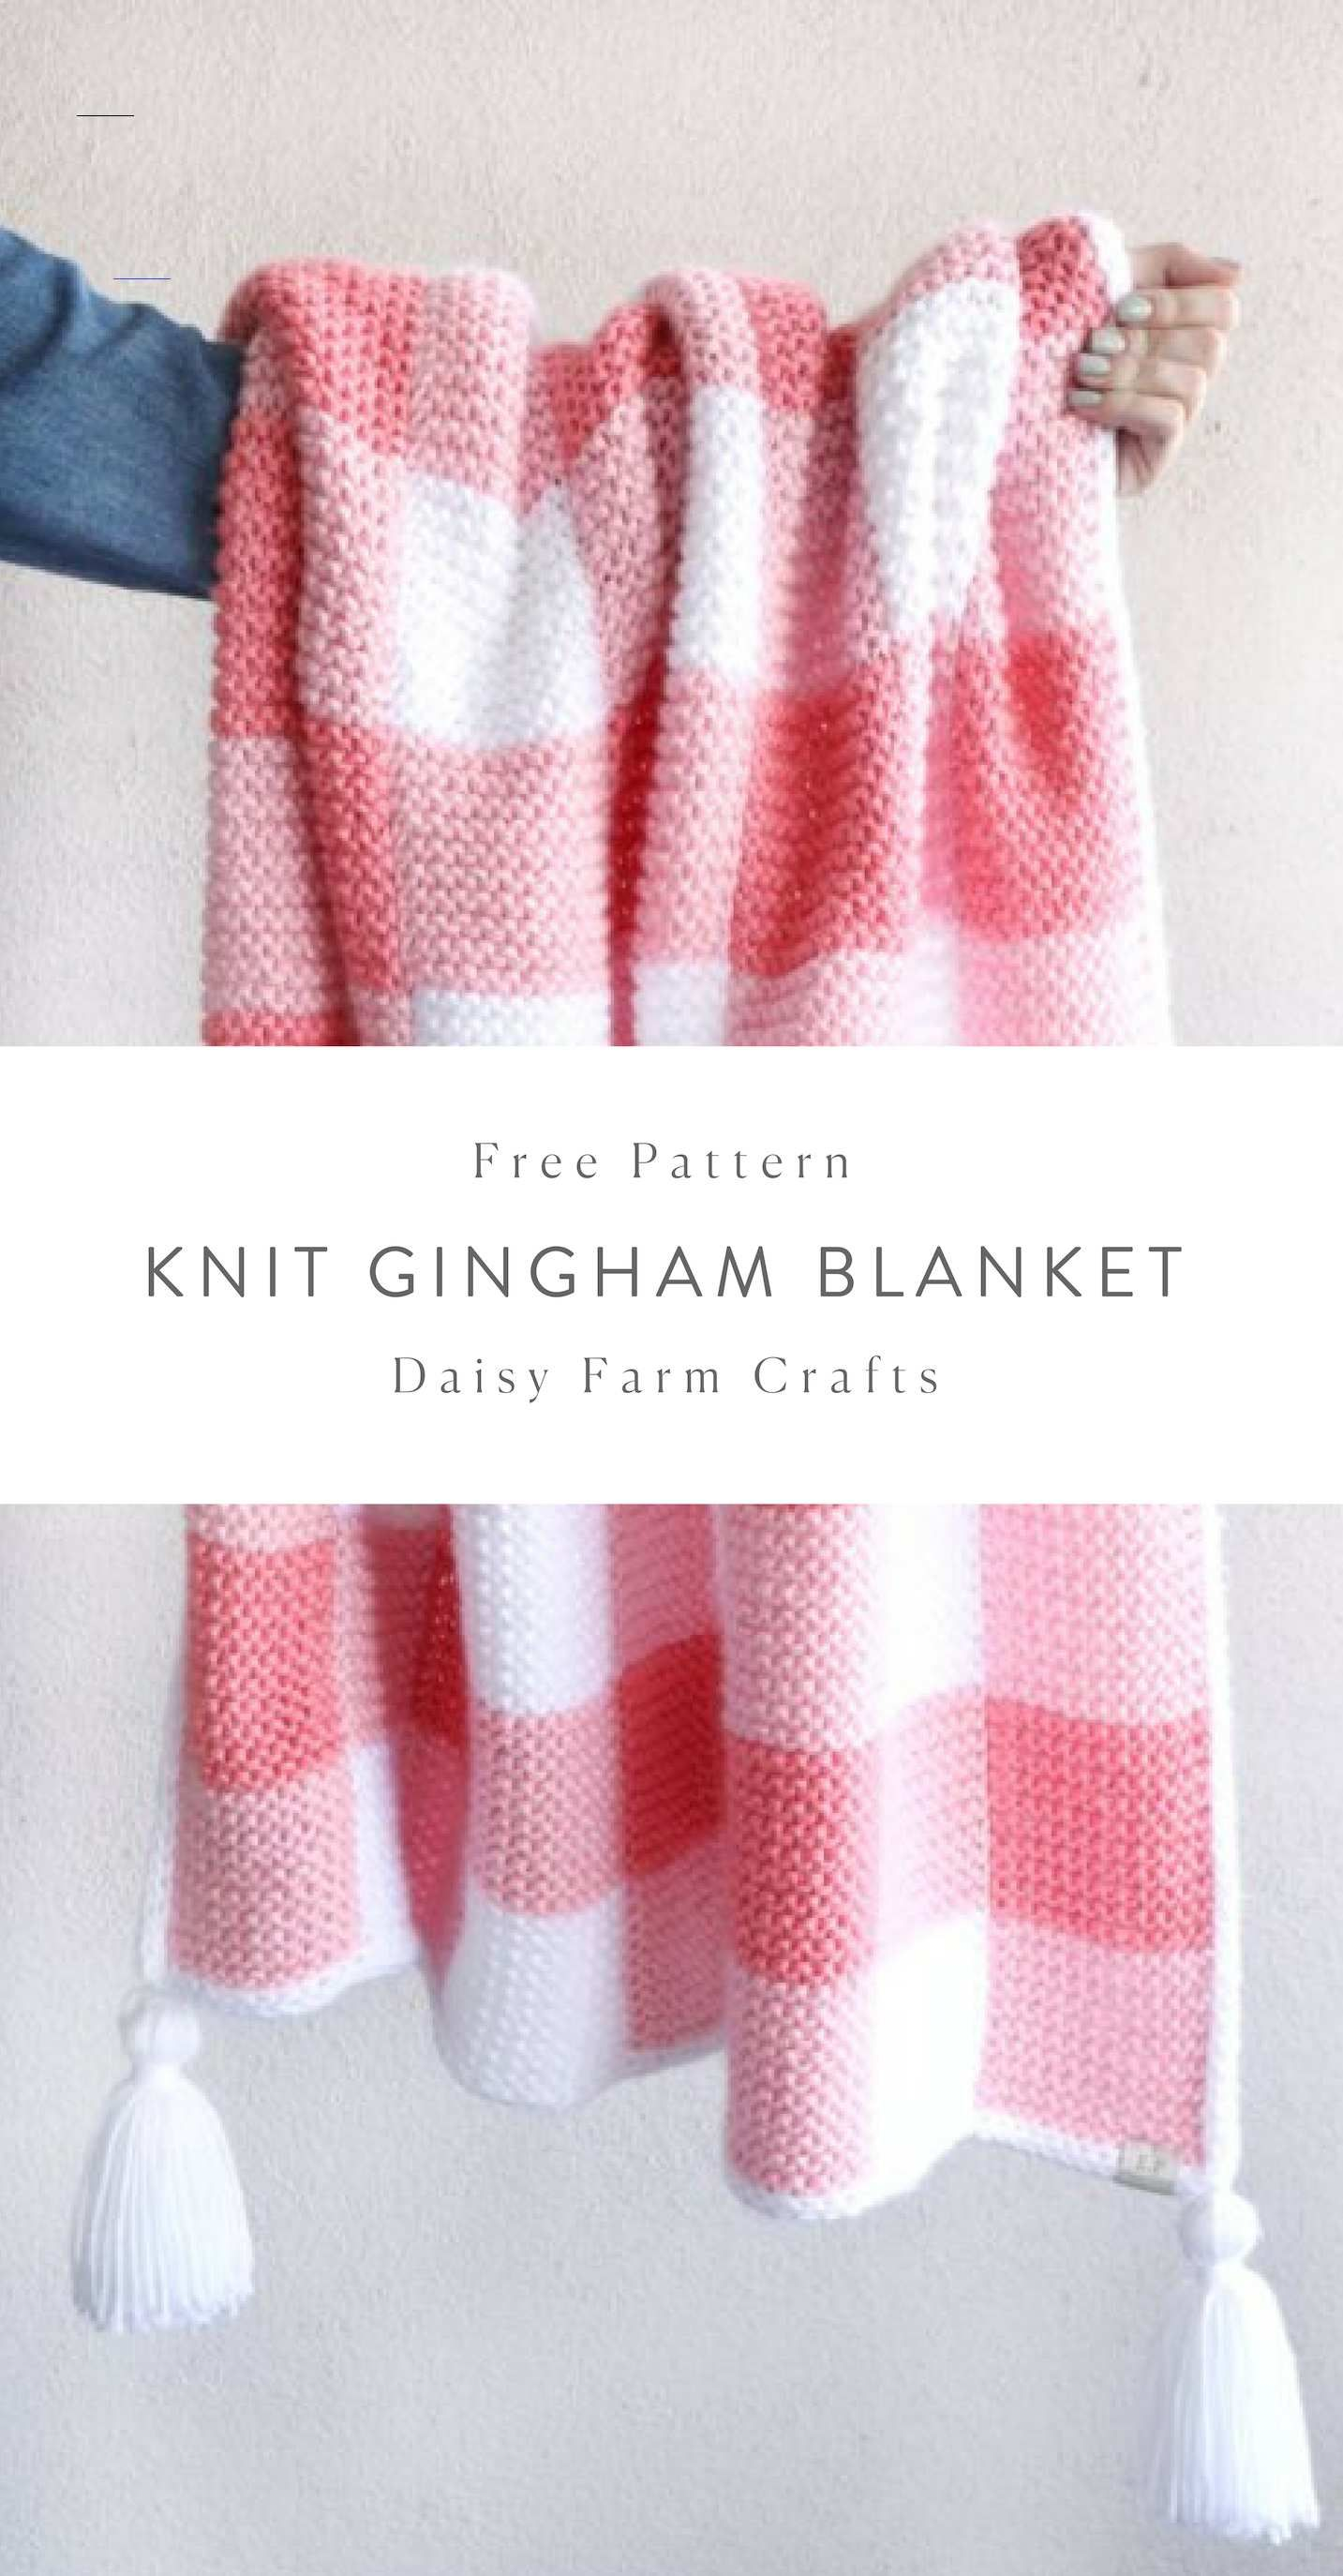 Free Pattern - Knit Gingham Blanket - #knittingprojects ...